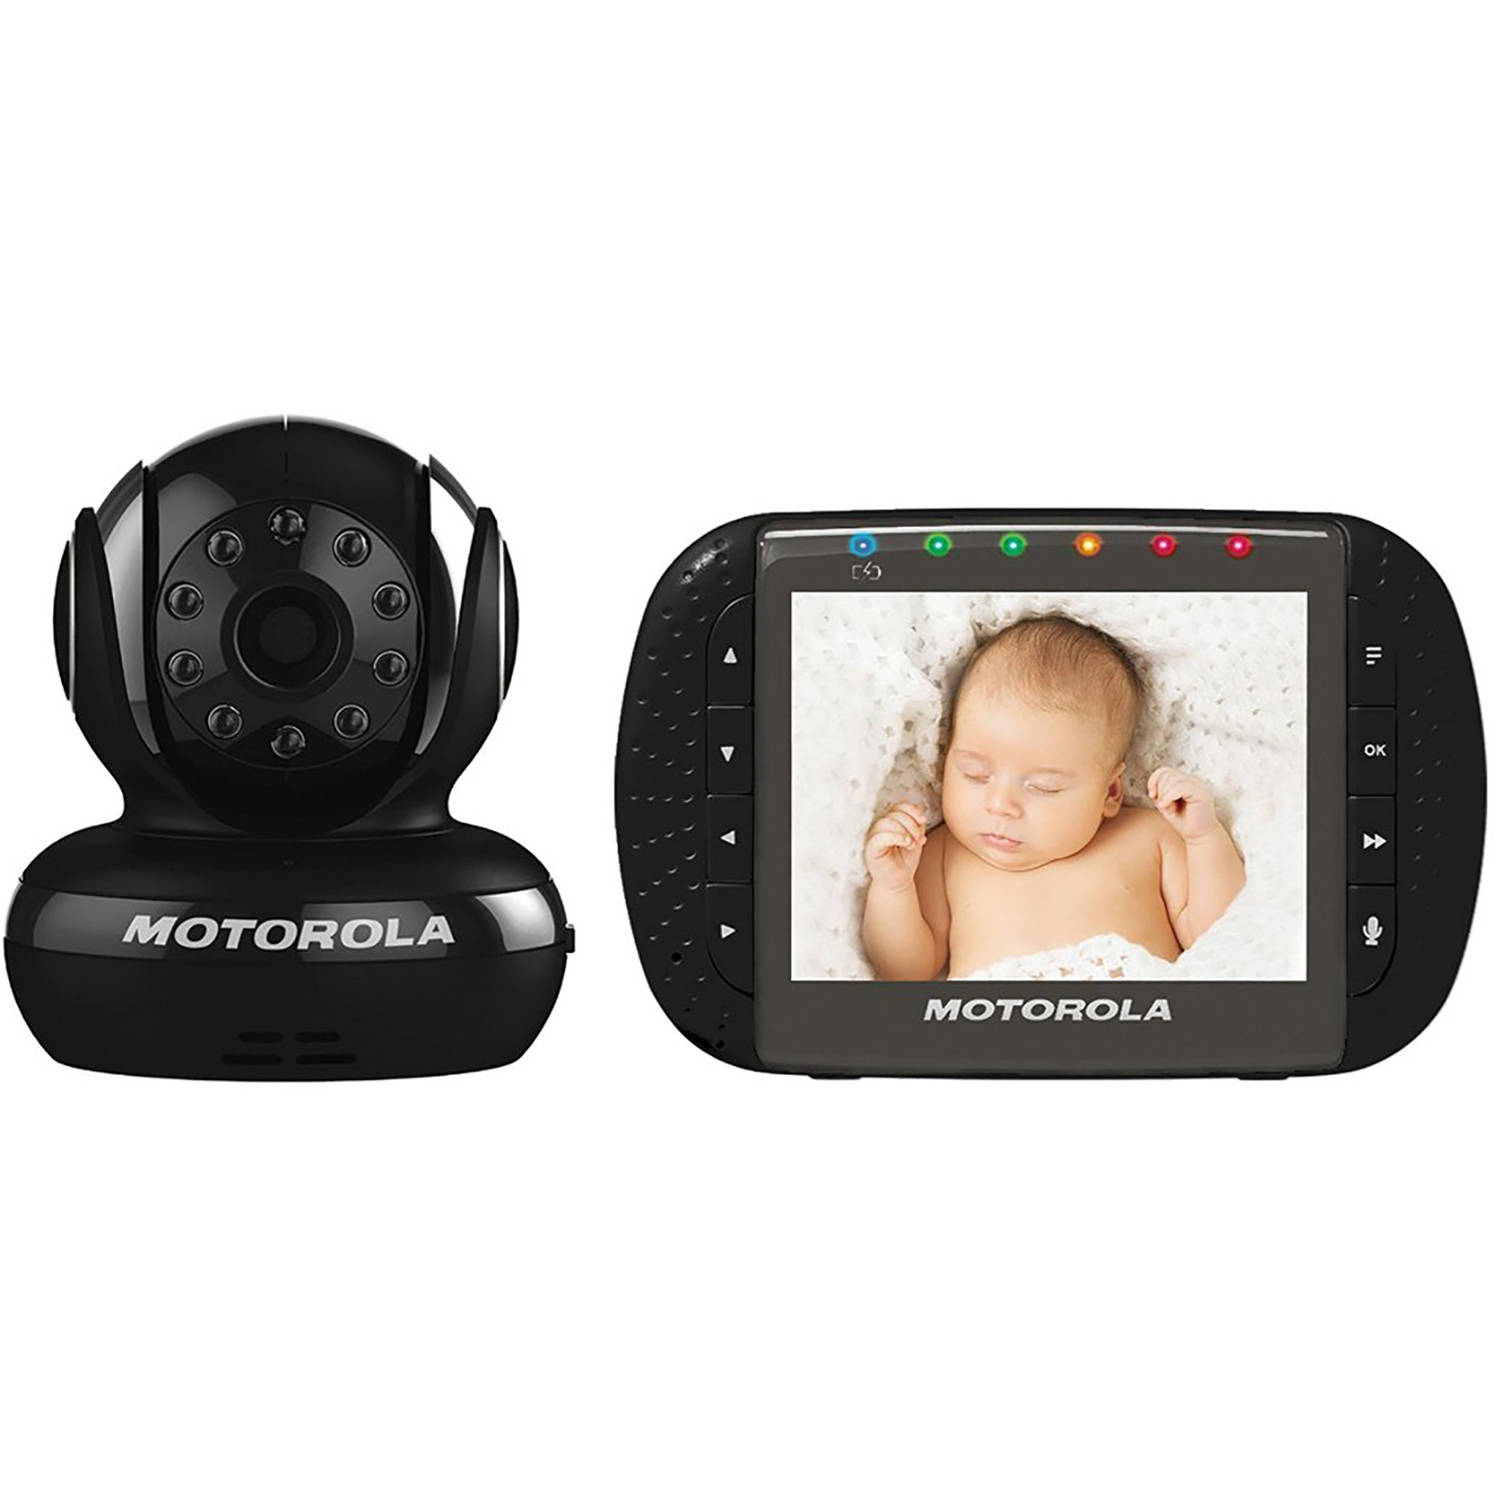 Motorola MBP43-B Digital Video Baby Monitor